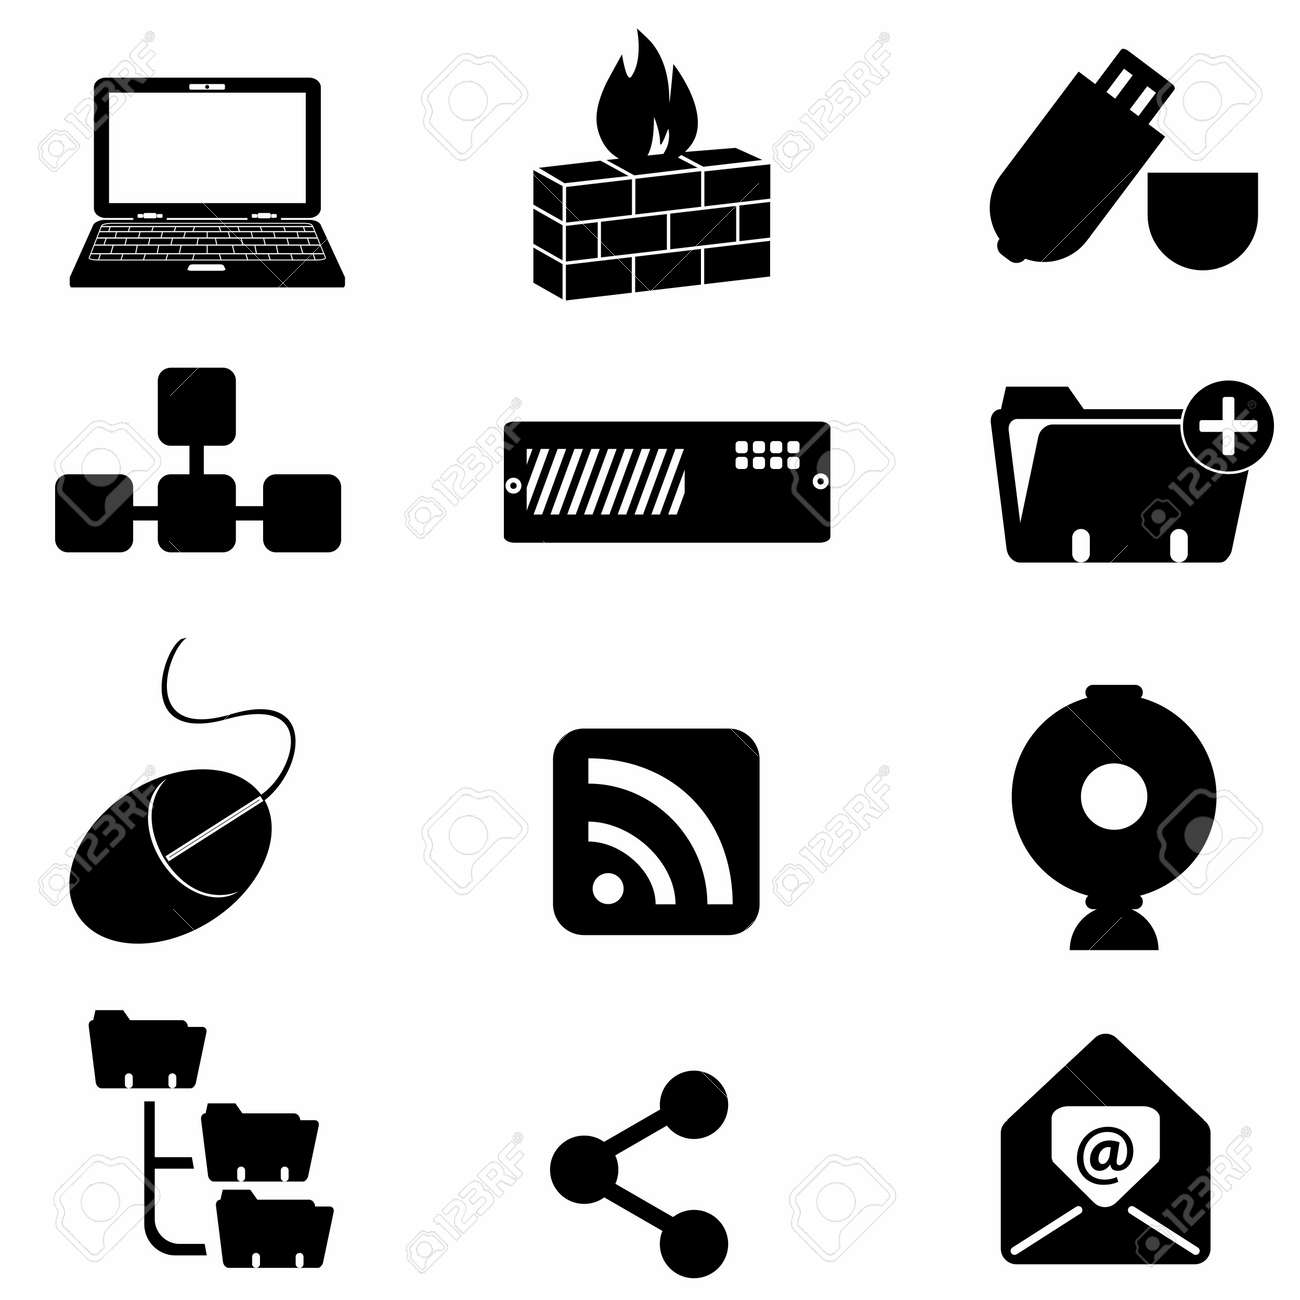 Computer and technology icon set Stock Vector - 9330394